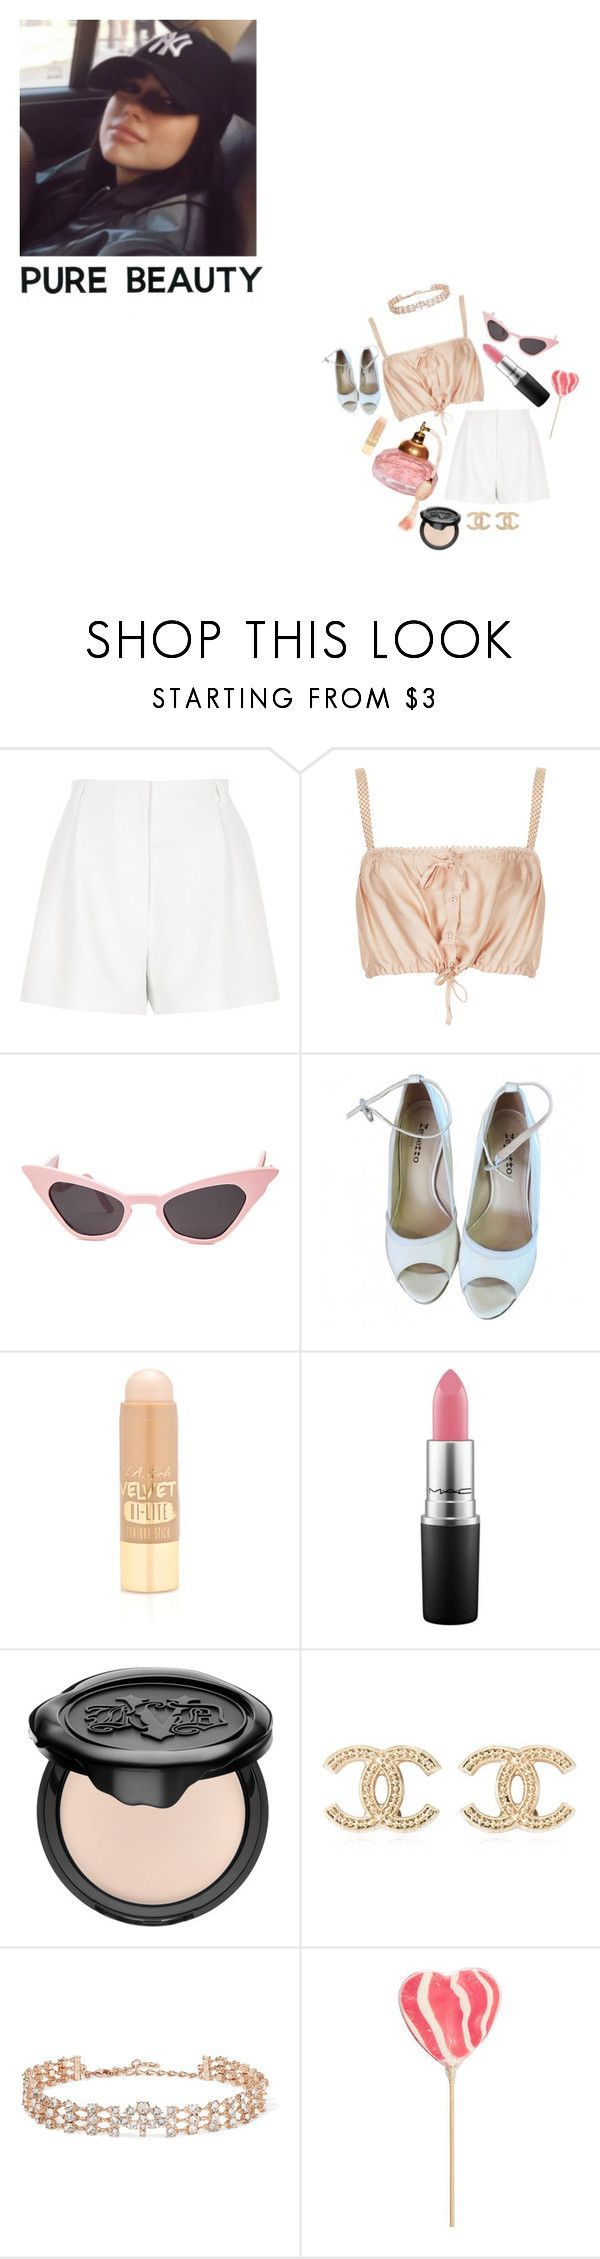 """""""same old sorry"""" by isobelle206 ❤ liked on Polyvore featuring River Island, Topshop, Repetto, L.A. Girl, MAC Cosmetics, Kat Von D, Chanel and Oscar de la Renta"""